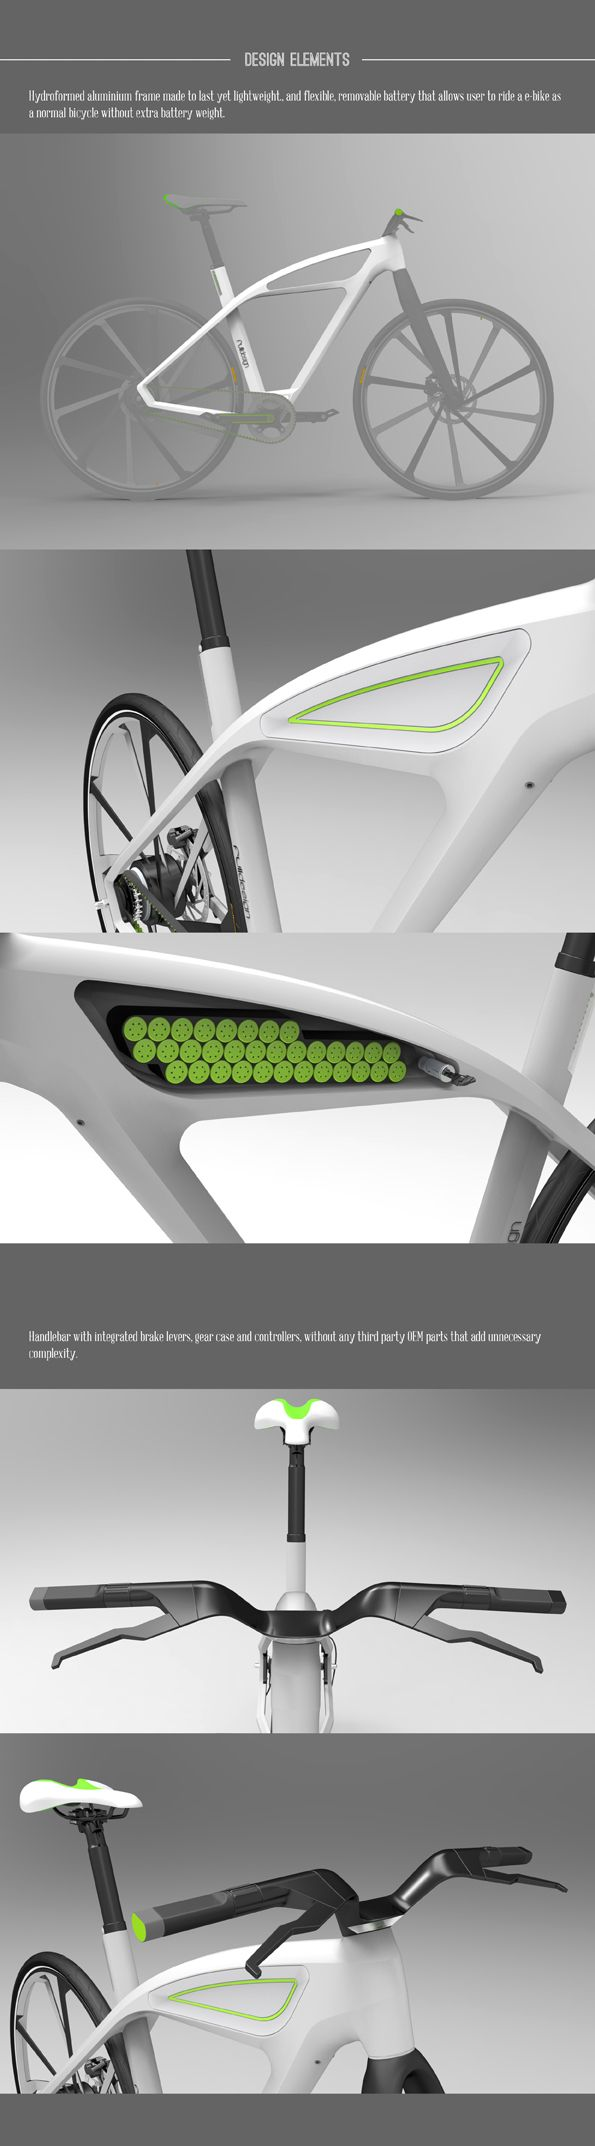 """eCycle""-electric bicycle design concept"